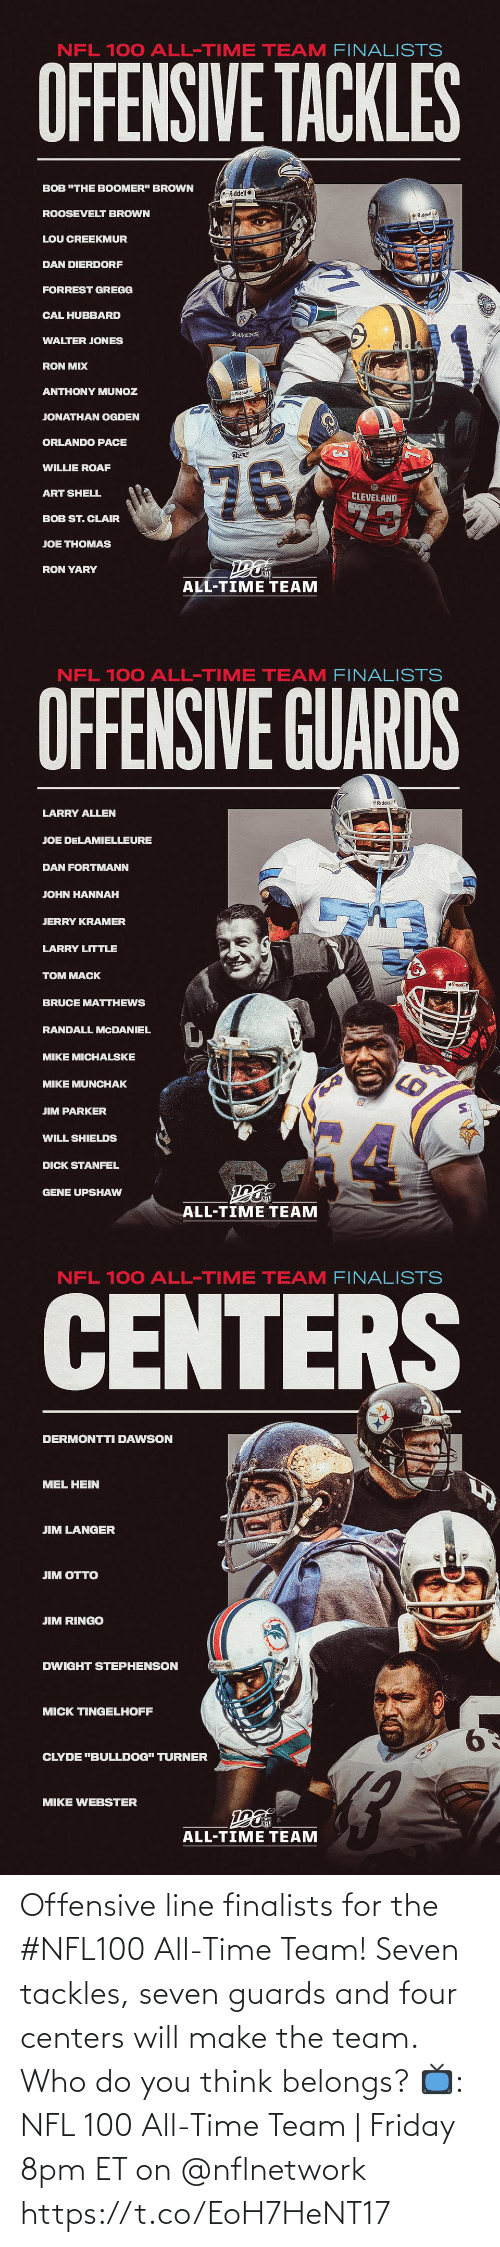 "Larry: NFL 100 ALL-TIME TEAM FINALISTS  OFFENSIVE TACKLES  BOB ""THE BOOMER"" BROWN  Riddel  ROOSEVELT BROWN  O Riddell  LOU CREEKMUR  DAN DIERDORF  FORREST GREGG  CAL HUBBARD  RAVENS  WALTER JONES  RON MIX  ANTHONY MUNOZ  Riddell  JONATHAN OGDEN  ORLANDO PACE  Rams  76  WILLIE ROAF  ART SHELL  CLEVELAND  73  BOB ST. CLAIR  JOE THOMAS  RON YARY  ALL-TIME TEAM   NFL 100 ALL-TIME TEAM FINALISTS  OFFENSIVE GUARDS  Riddel  LARRY ALLEN  JOE DELAMIELLEURE  DAN FORTMANN  JOHN HANNAH  JERRY KRAMER  LARRY LITTLE  TOM MACK  BRUCE MATTHEWS  RANDALL MCDANIEL  MIKE MICHALSKE  MIKE MUNCHAK  JIM PARKER  WILL SHIELDS  DICK STANFEL  GENE UPSHAW  ALL-TIME TEAM   NFL 100 ALL-TIME TEAM FINALISTS  CENTERS  DERMONTTI DAWSON  MEL HEIN  JIM LANGER  ЛM OТTO  JIM RINGO  DWIGHT STEPHENSON  MICK TINGELHOFF  9.  CLYDE ""BULLDOG"" TURNER  MIKE WEBSTER  ALL-TIME TEAM Offensive line finalists for the #NFL100 All-Time Team!  Seven tackles, seven guards and four centers will make the team. Who do you think belongs?  📺: NFL 100 All-Time Team 